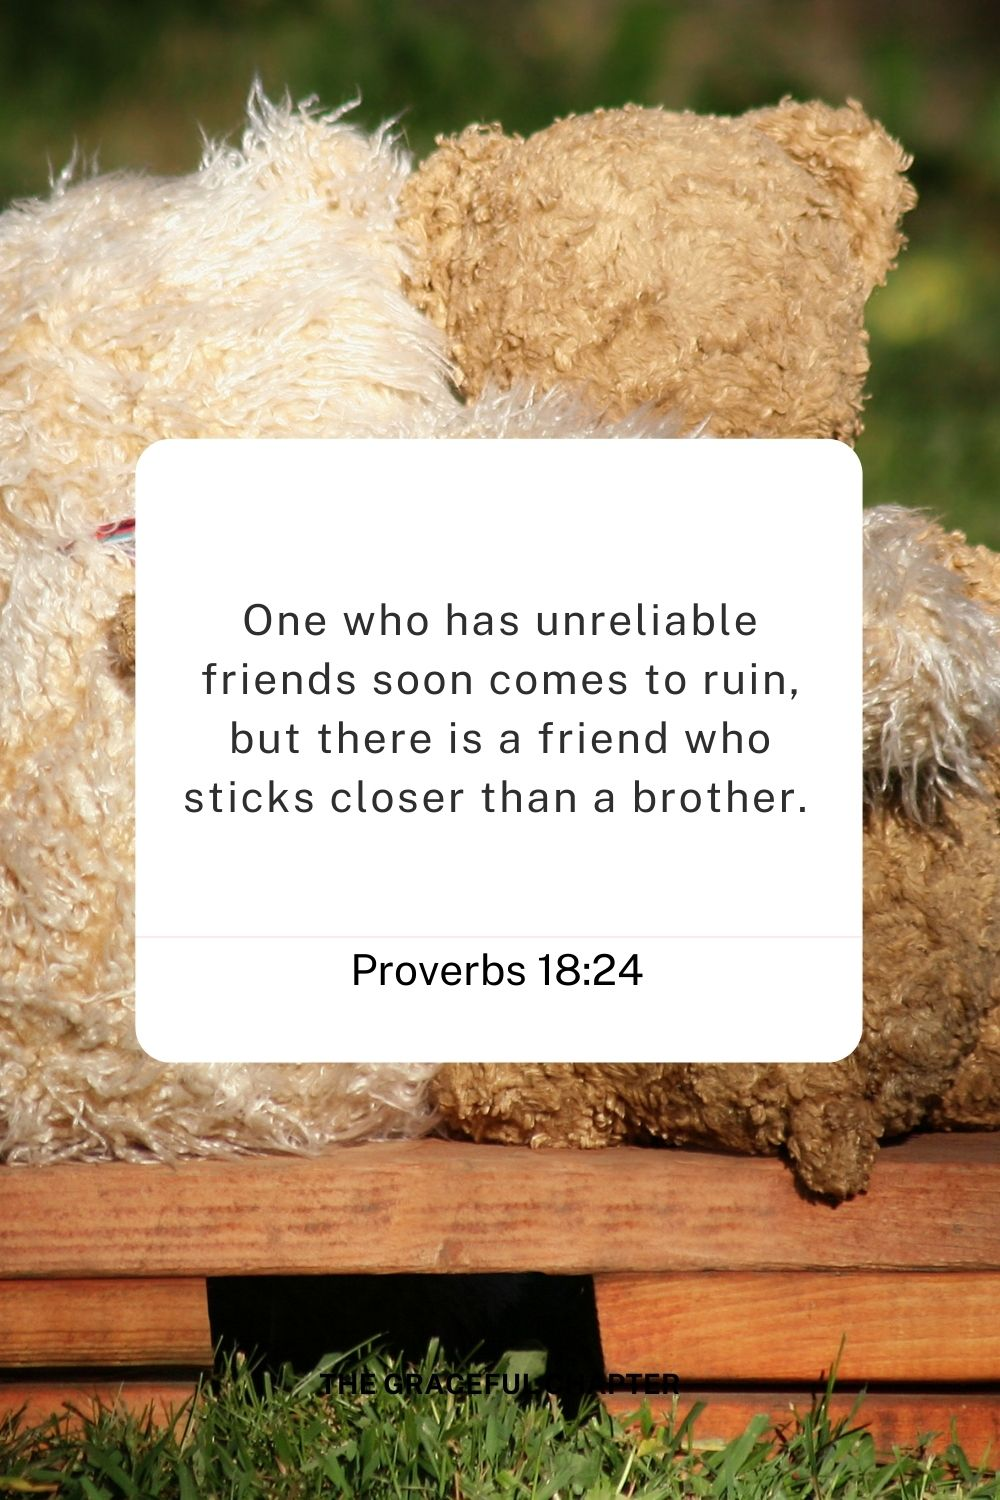 One who has unreliable friends soon comes to ruin, but there is a friend who sticks closer than a brother.  Proverbs 18:24